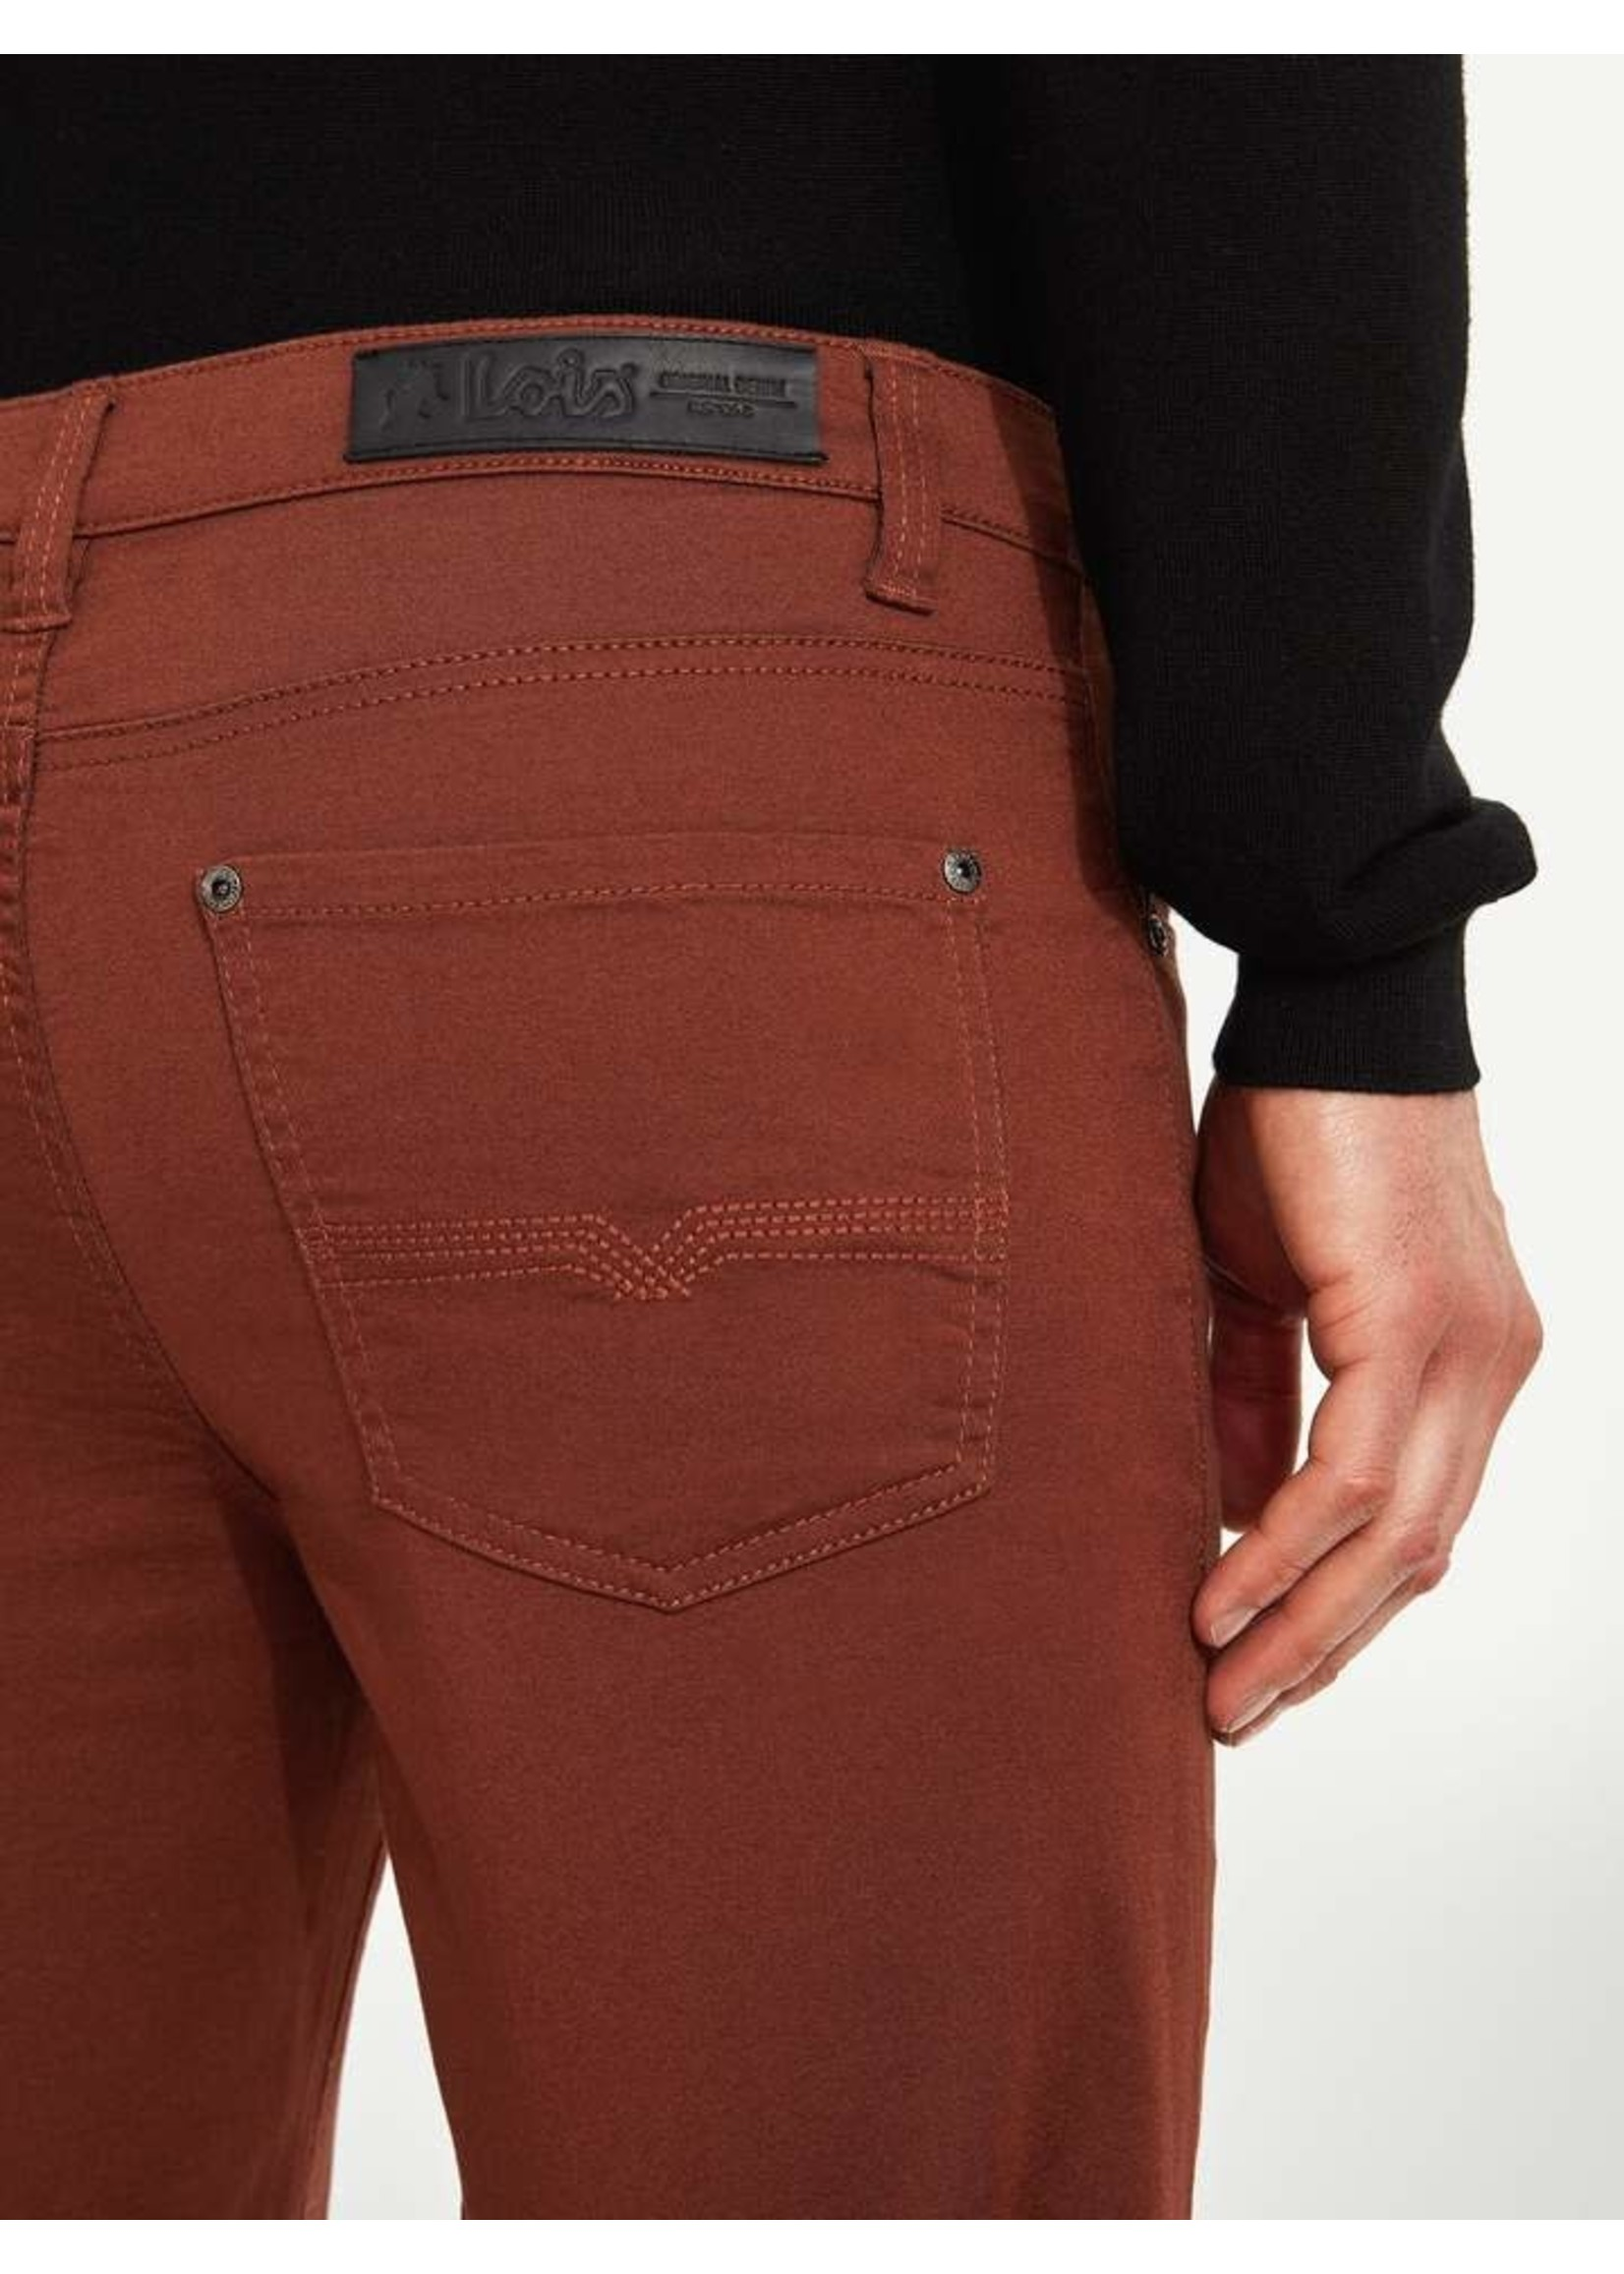 """Lois Jeans Canada The """"Brad Slim 6240-63"""" by Lois Jeans"""